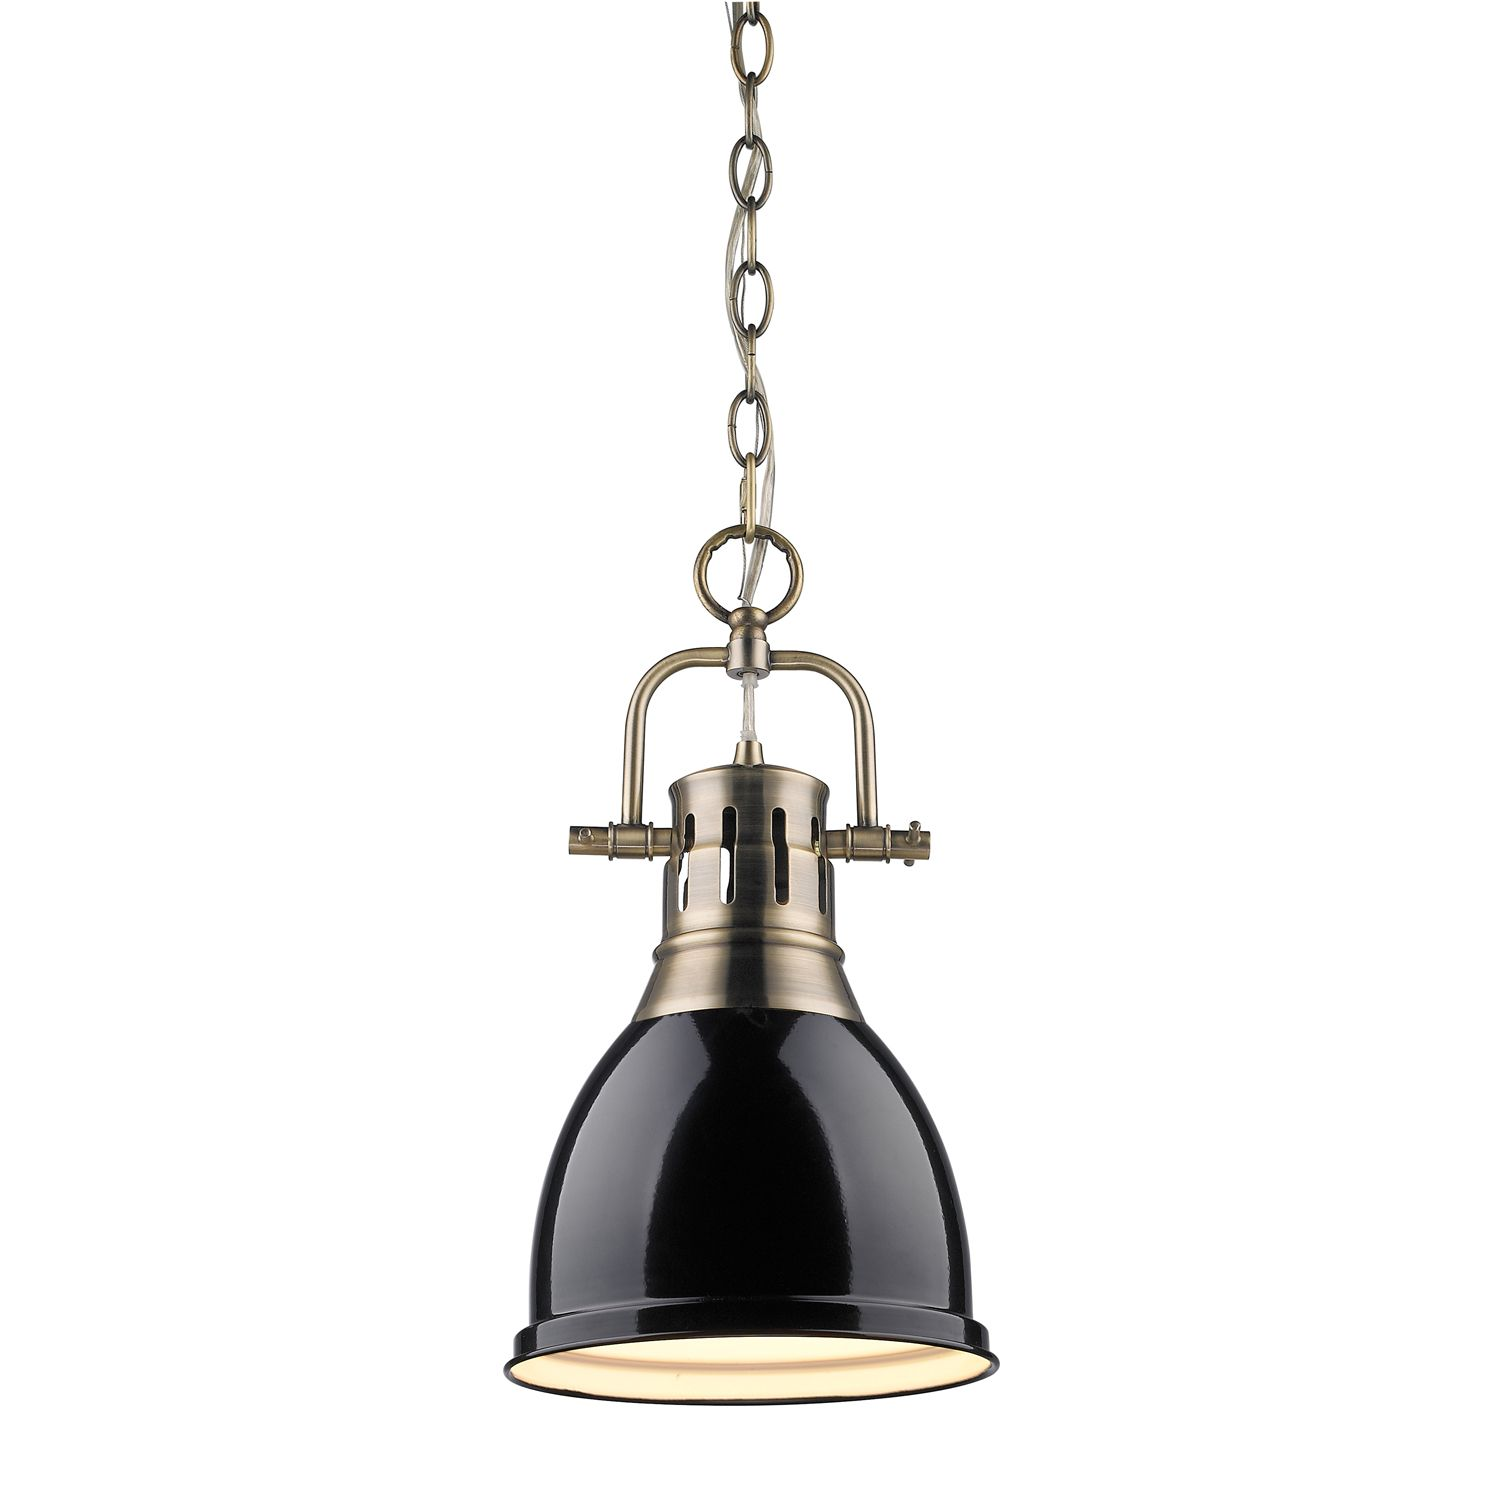 Golden Lighting 3602 S Ab Bk Duncan Mini Pendant With Chain In Aged Brass With A Black Mini Pendant Lights